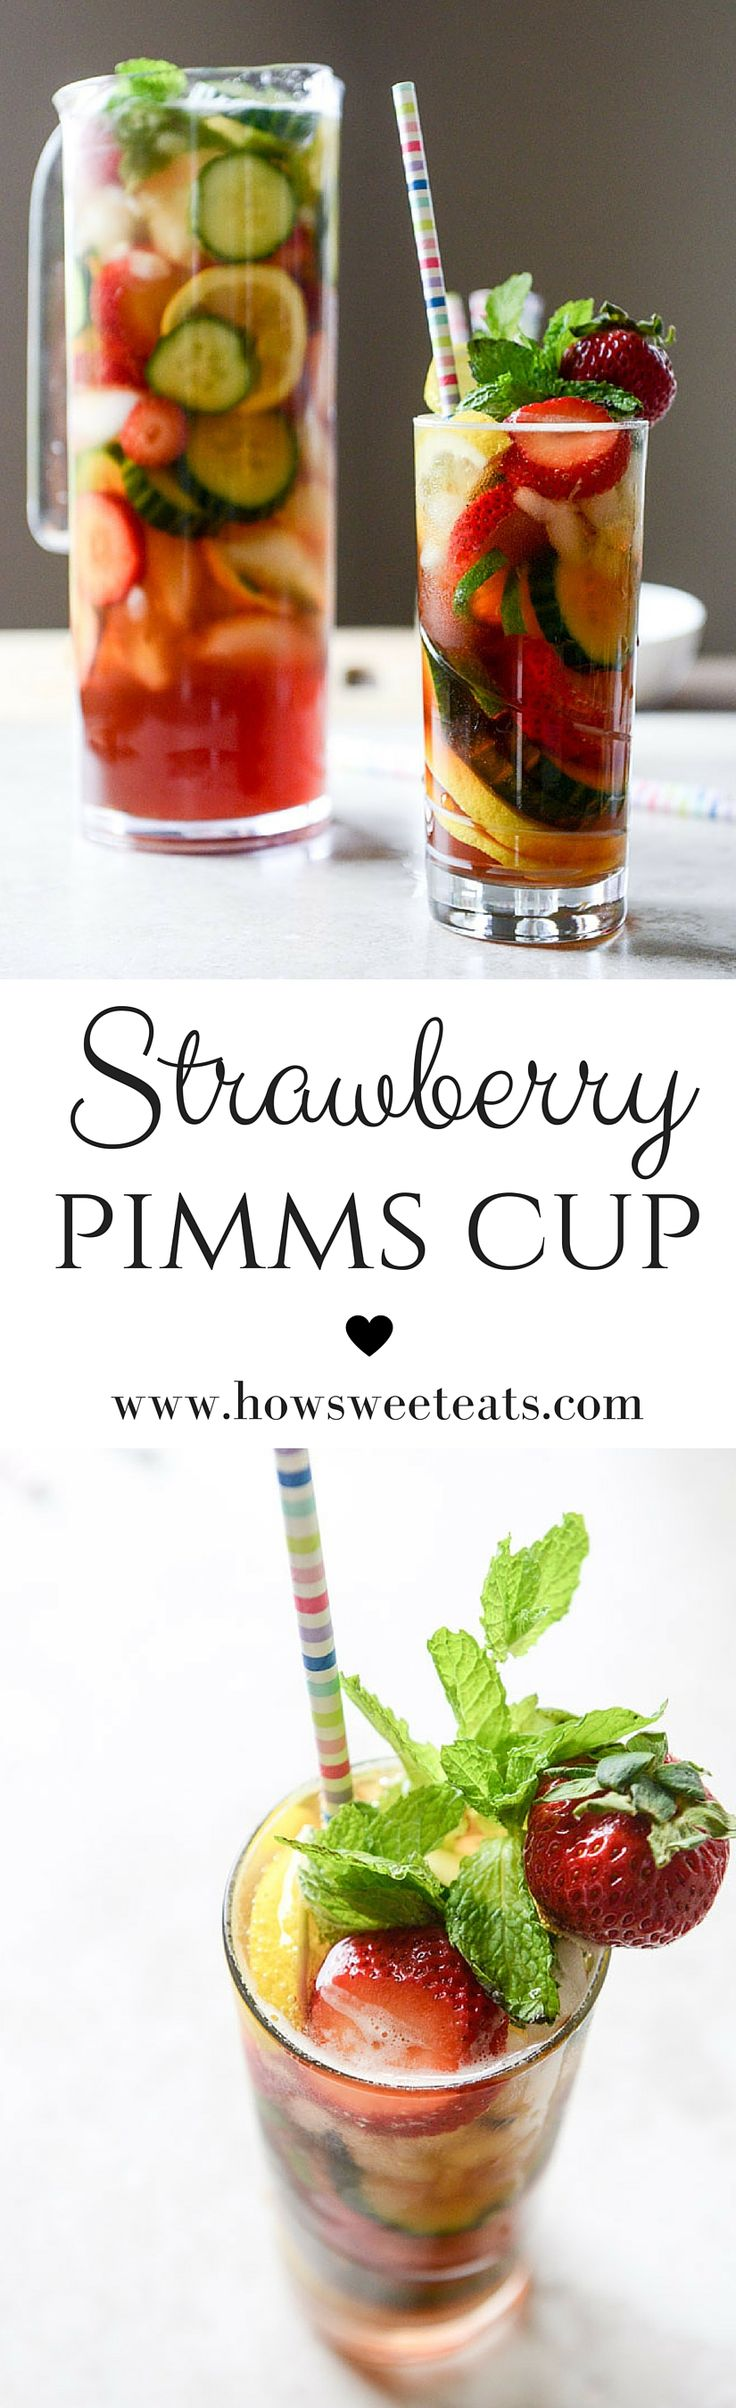 25 best ideas about pimms drink on pinterest pimms